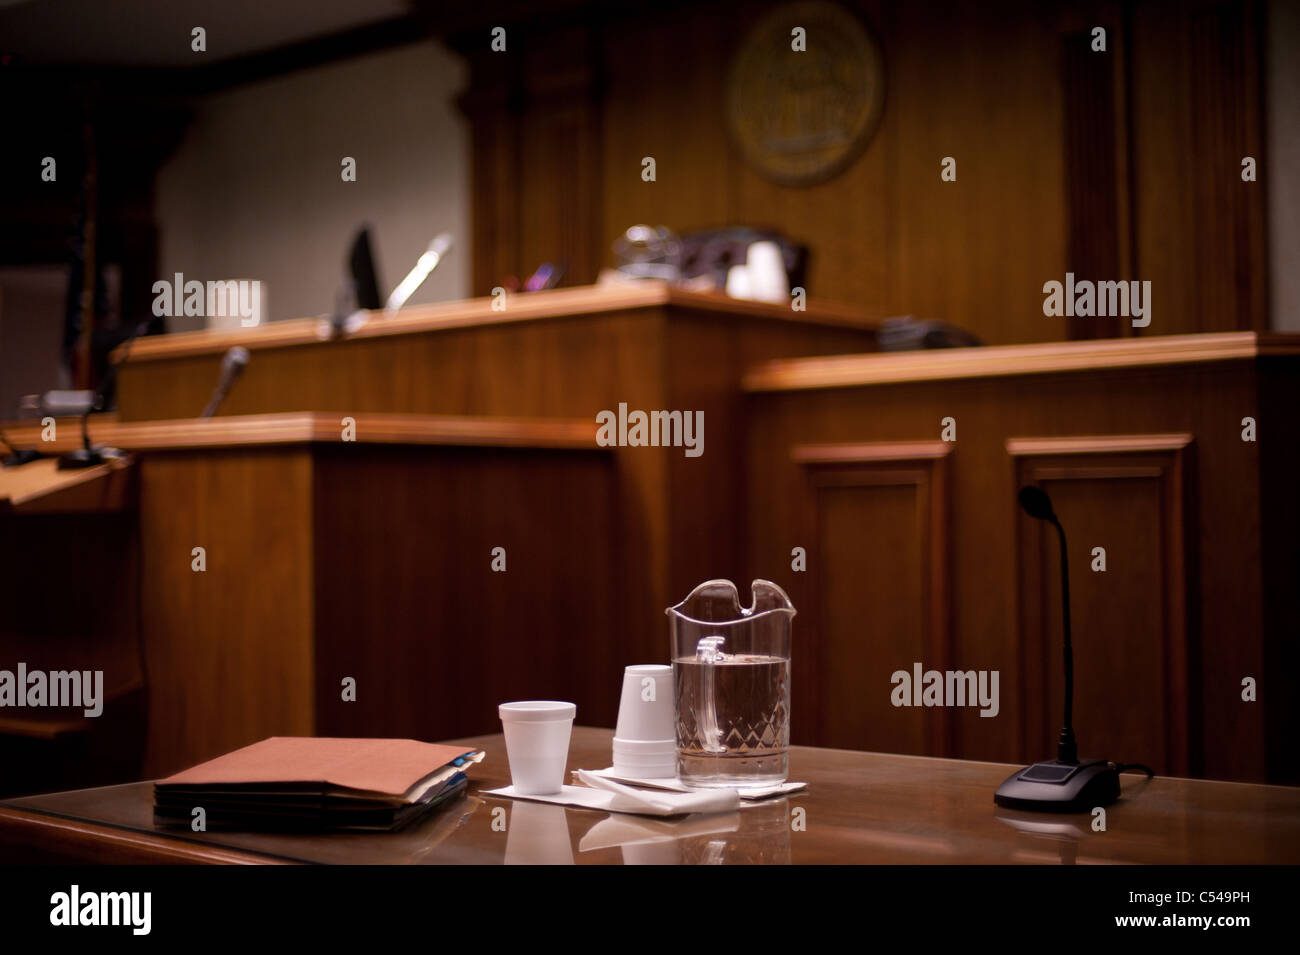 State Superior Court - Stock Image